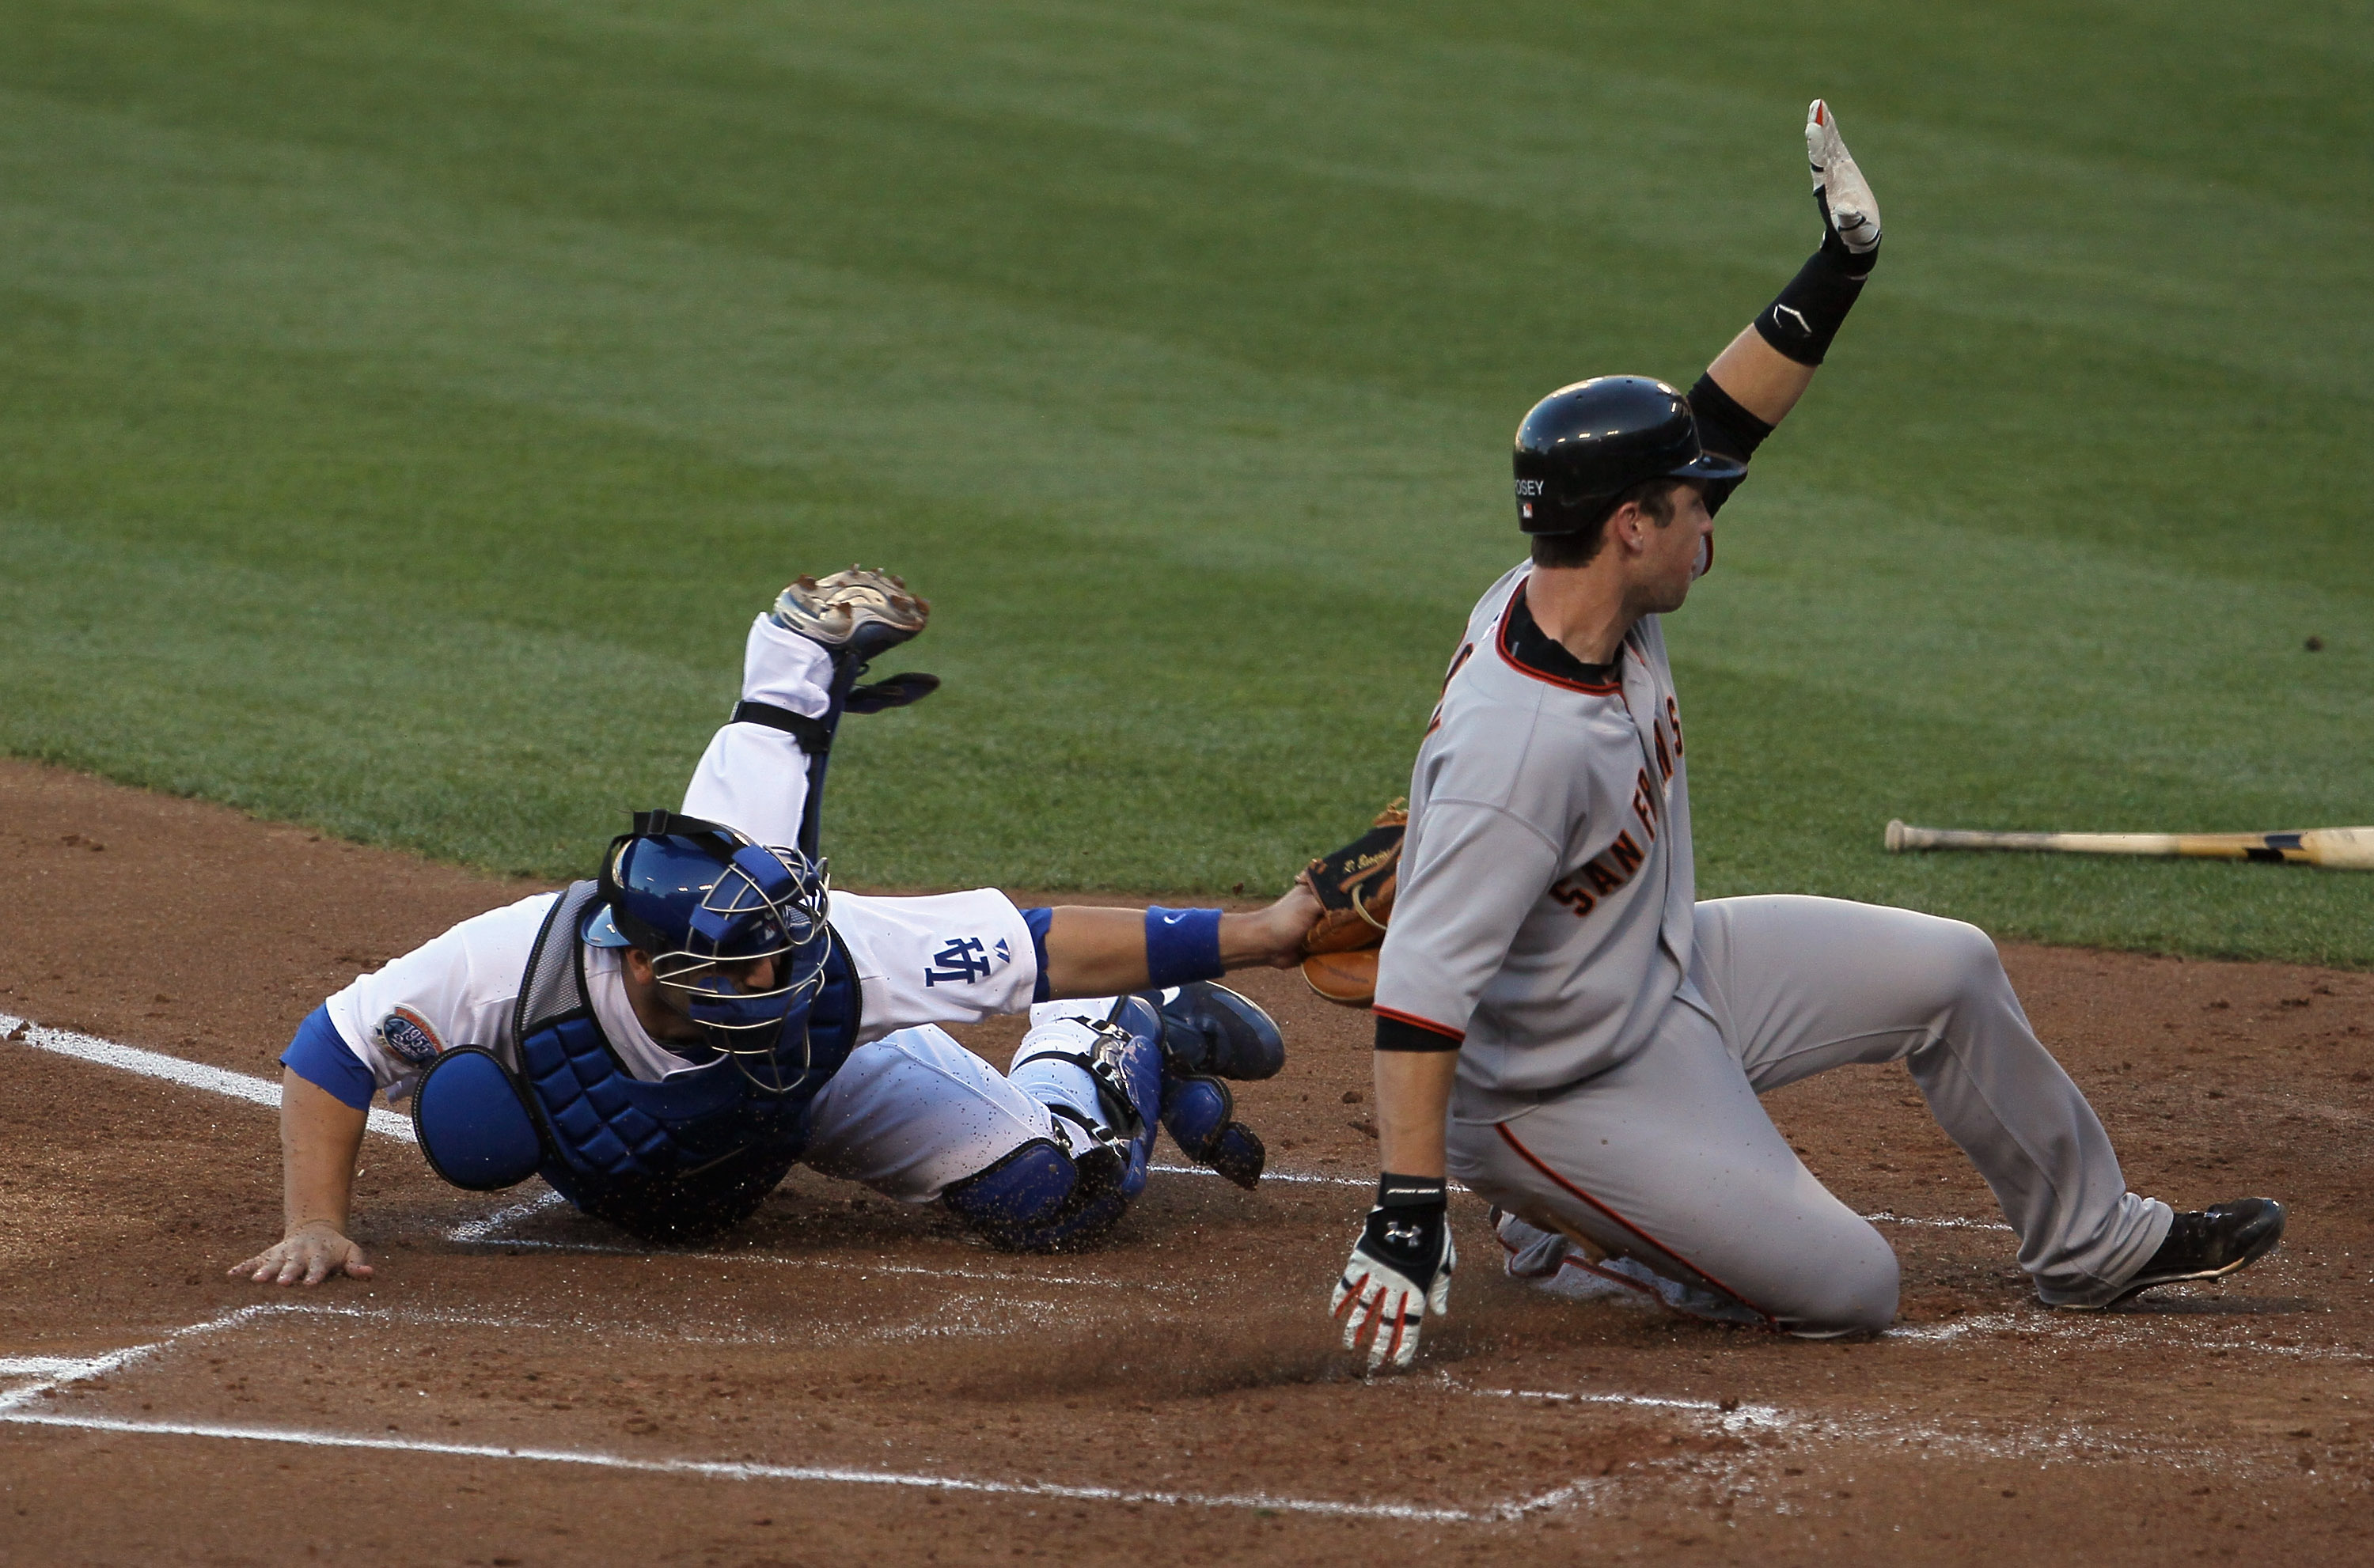 LOS ANGELES, CA - SEPTEMBER 05:  Buster Posey #28 of the San Francisco Giants slides safely past catcher Rod Barajas #28 of the Los Angeles Dodgers in the second inning at Dodger Stadium on September 5, 2010 in Los Angeles, California.  (Photo by Jeff Gro